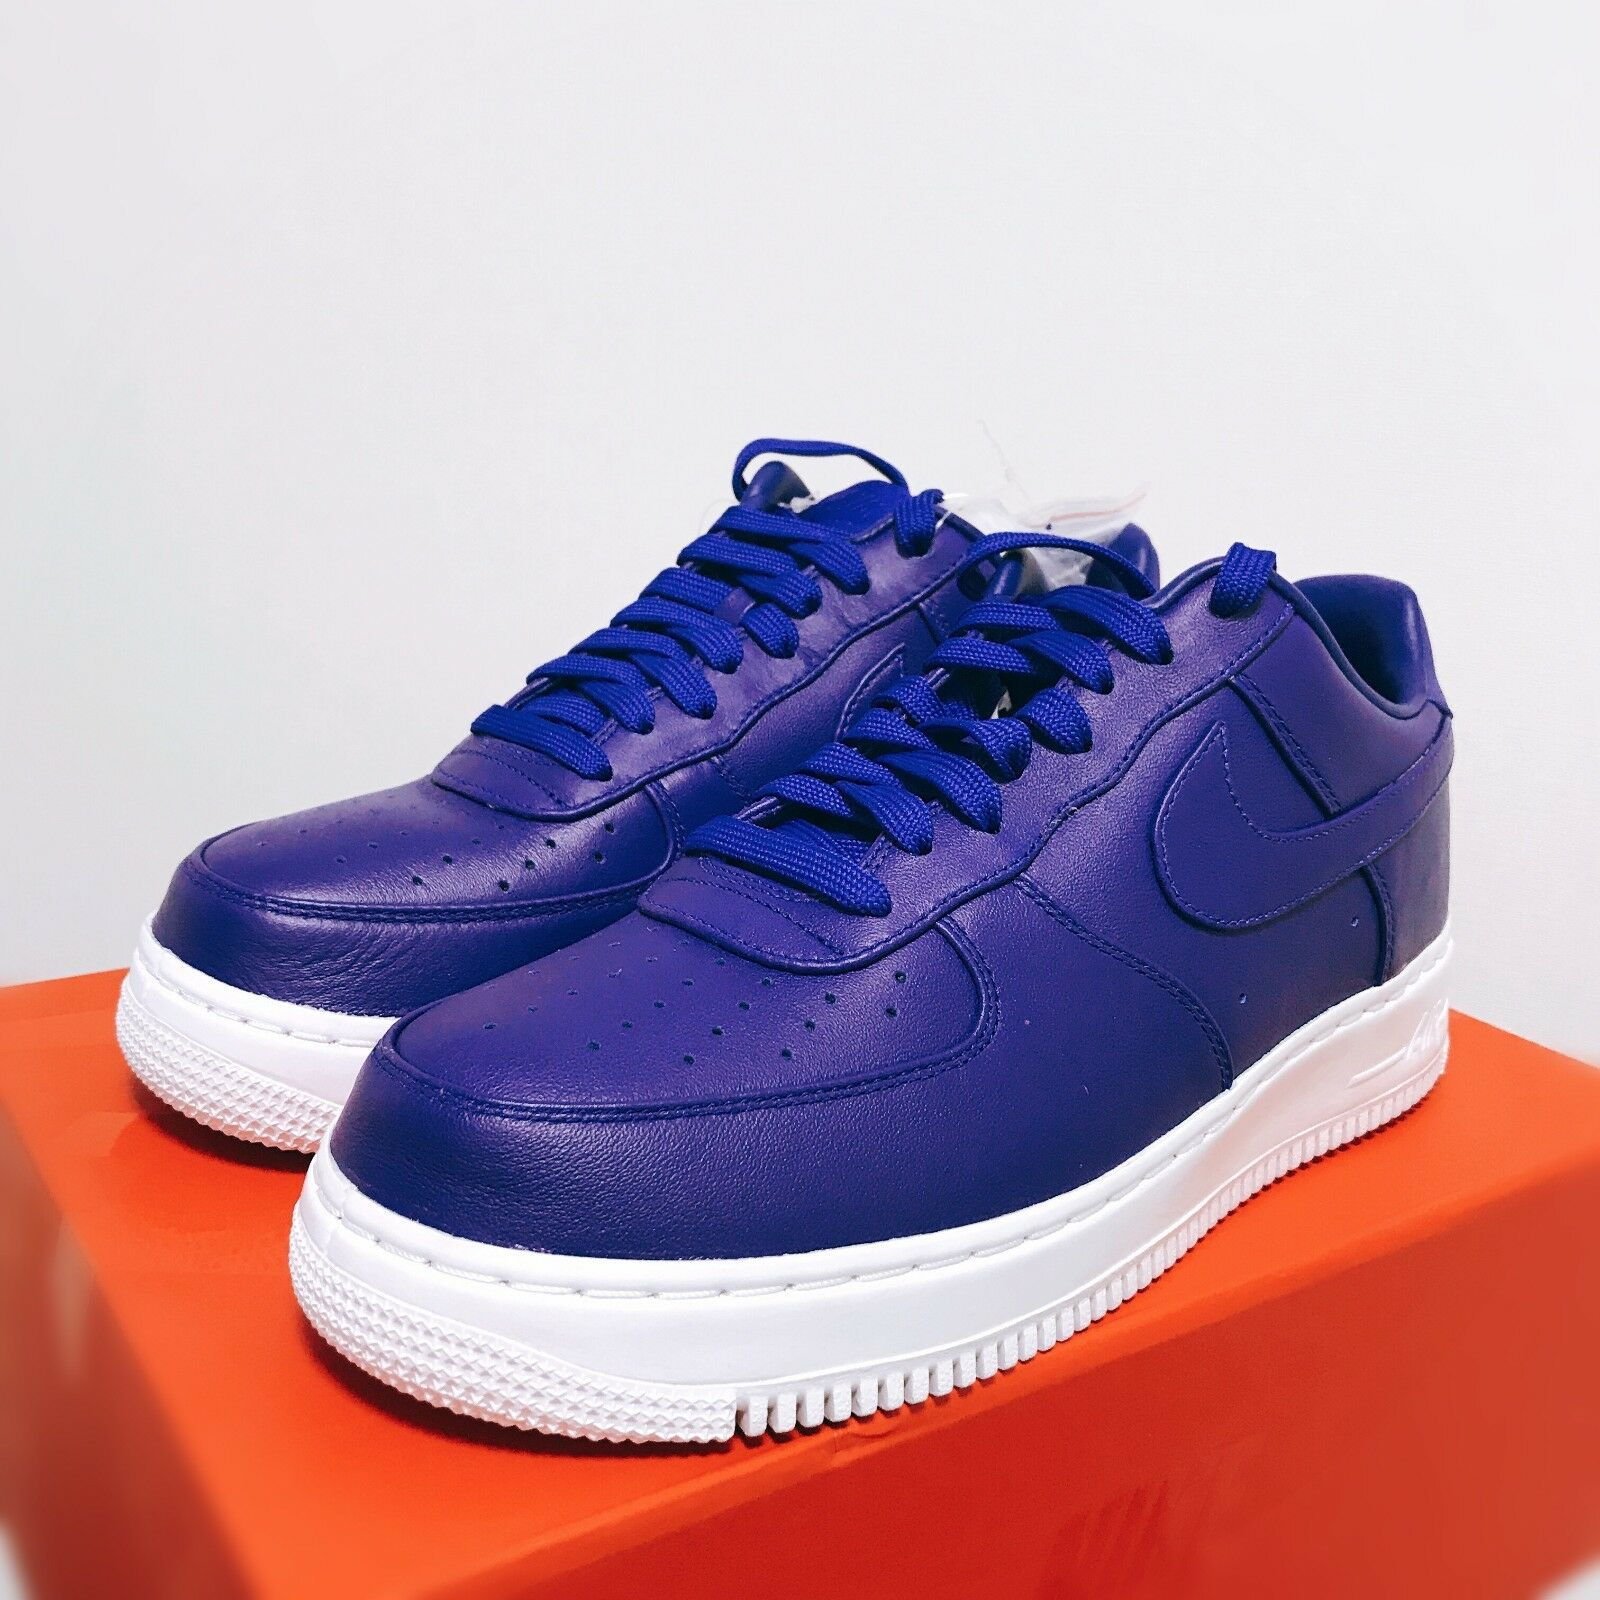 Nike Lab Air Force 1 Low Concord Concord 555106-402 555106-402 555106-402 Größe 9 Limited 21ce6b